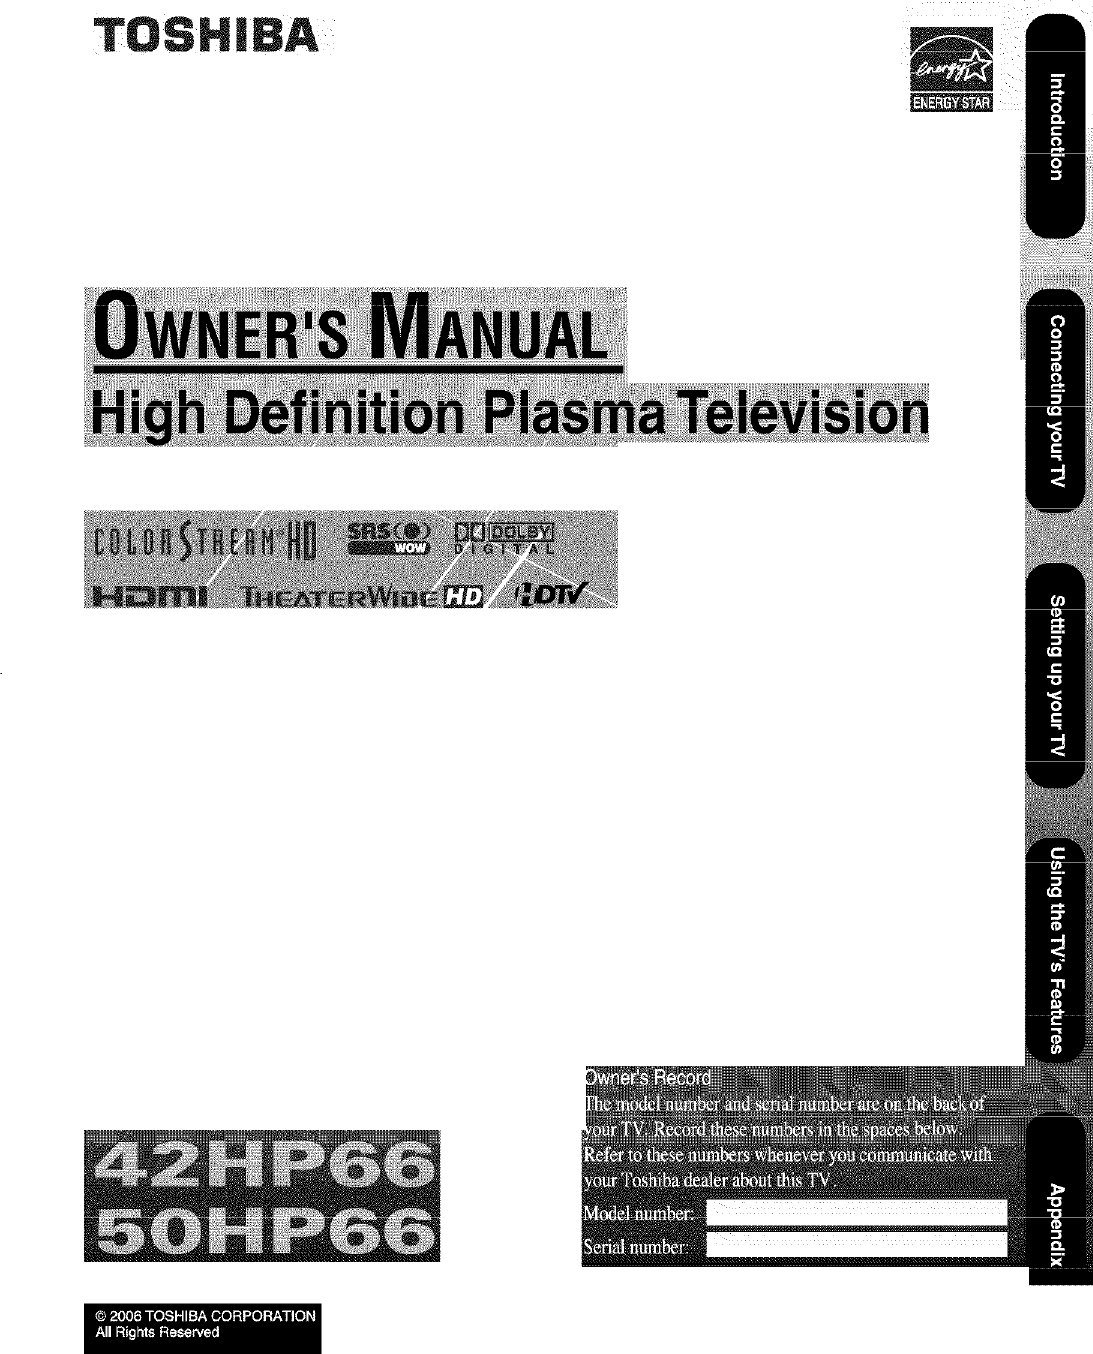 toshiba 42hp66 user manual plasma television manuals and guides l0608546 rh usermanual wiki Toshiba TV Toshiba Plasma TV